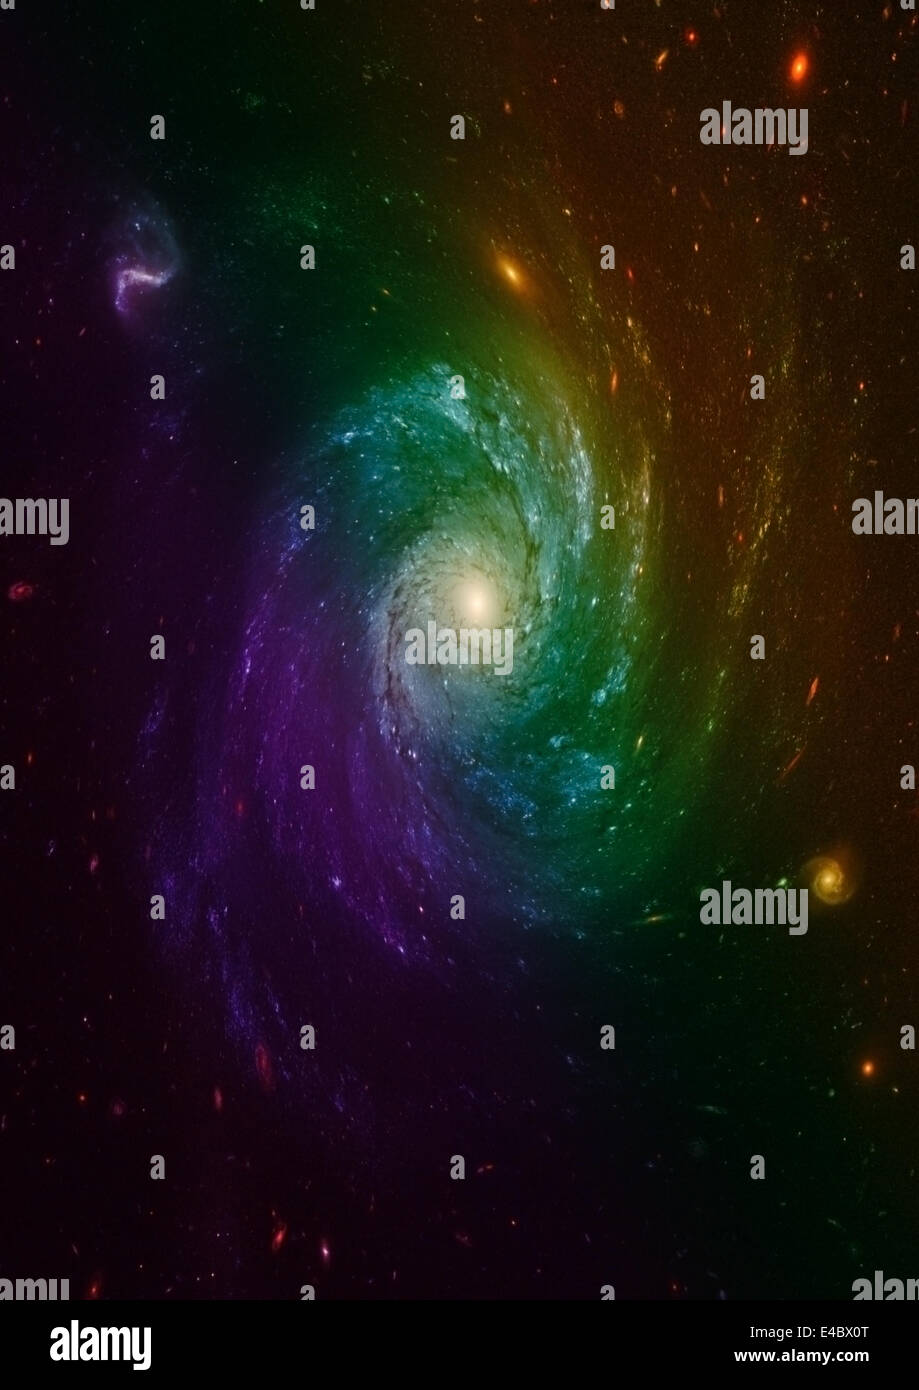 galaxy in a free space - Stock Image